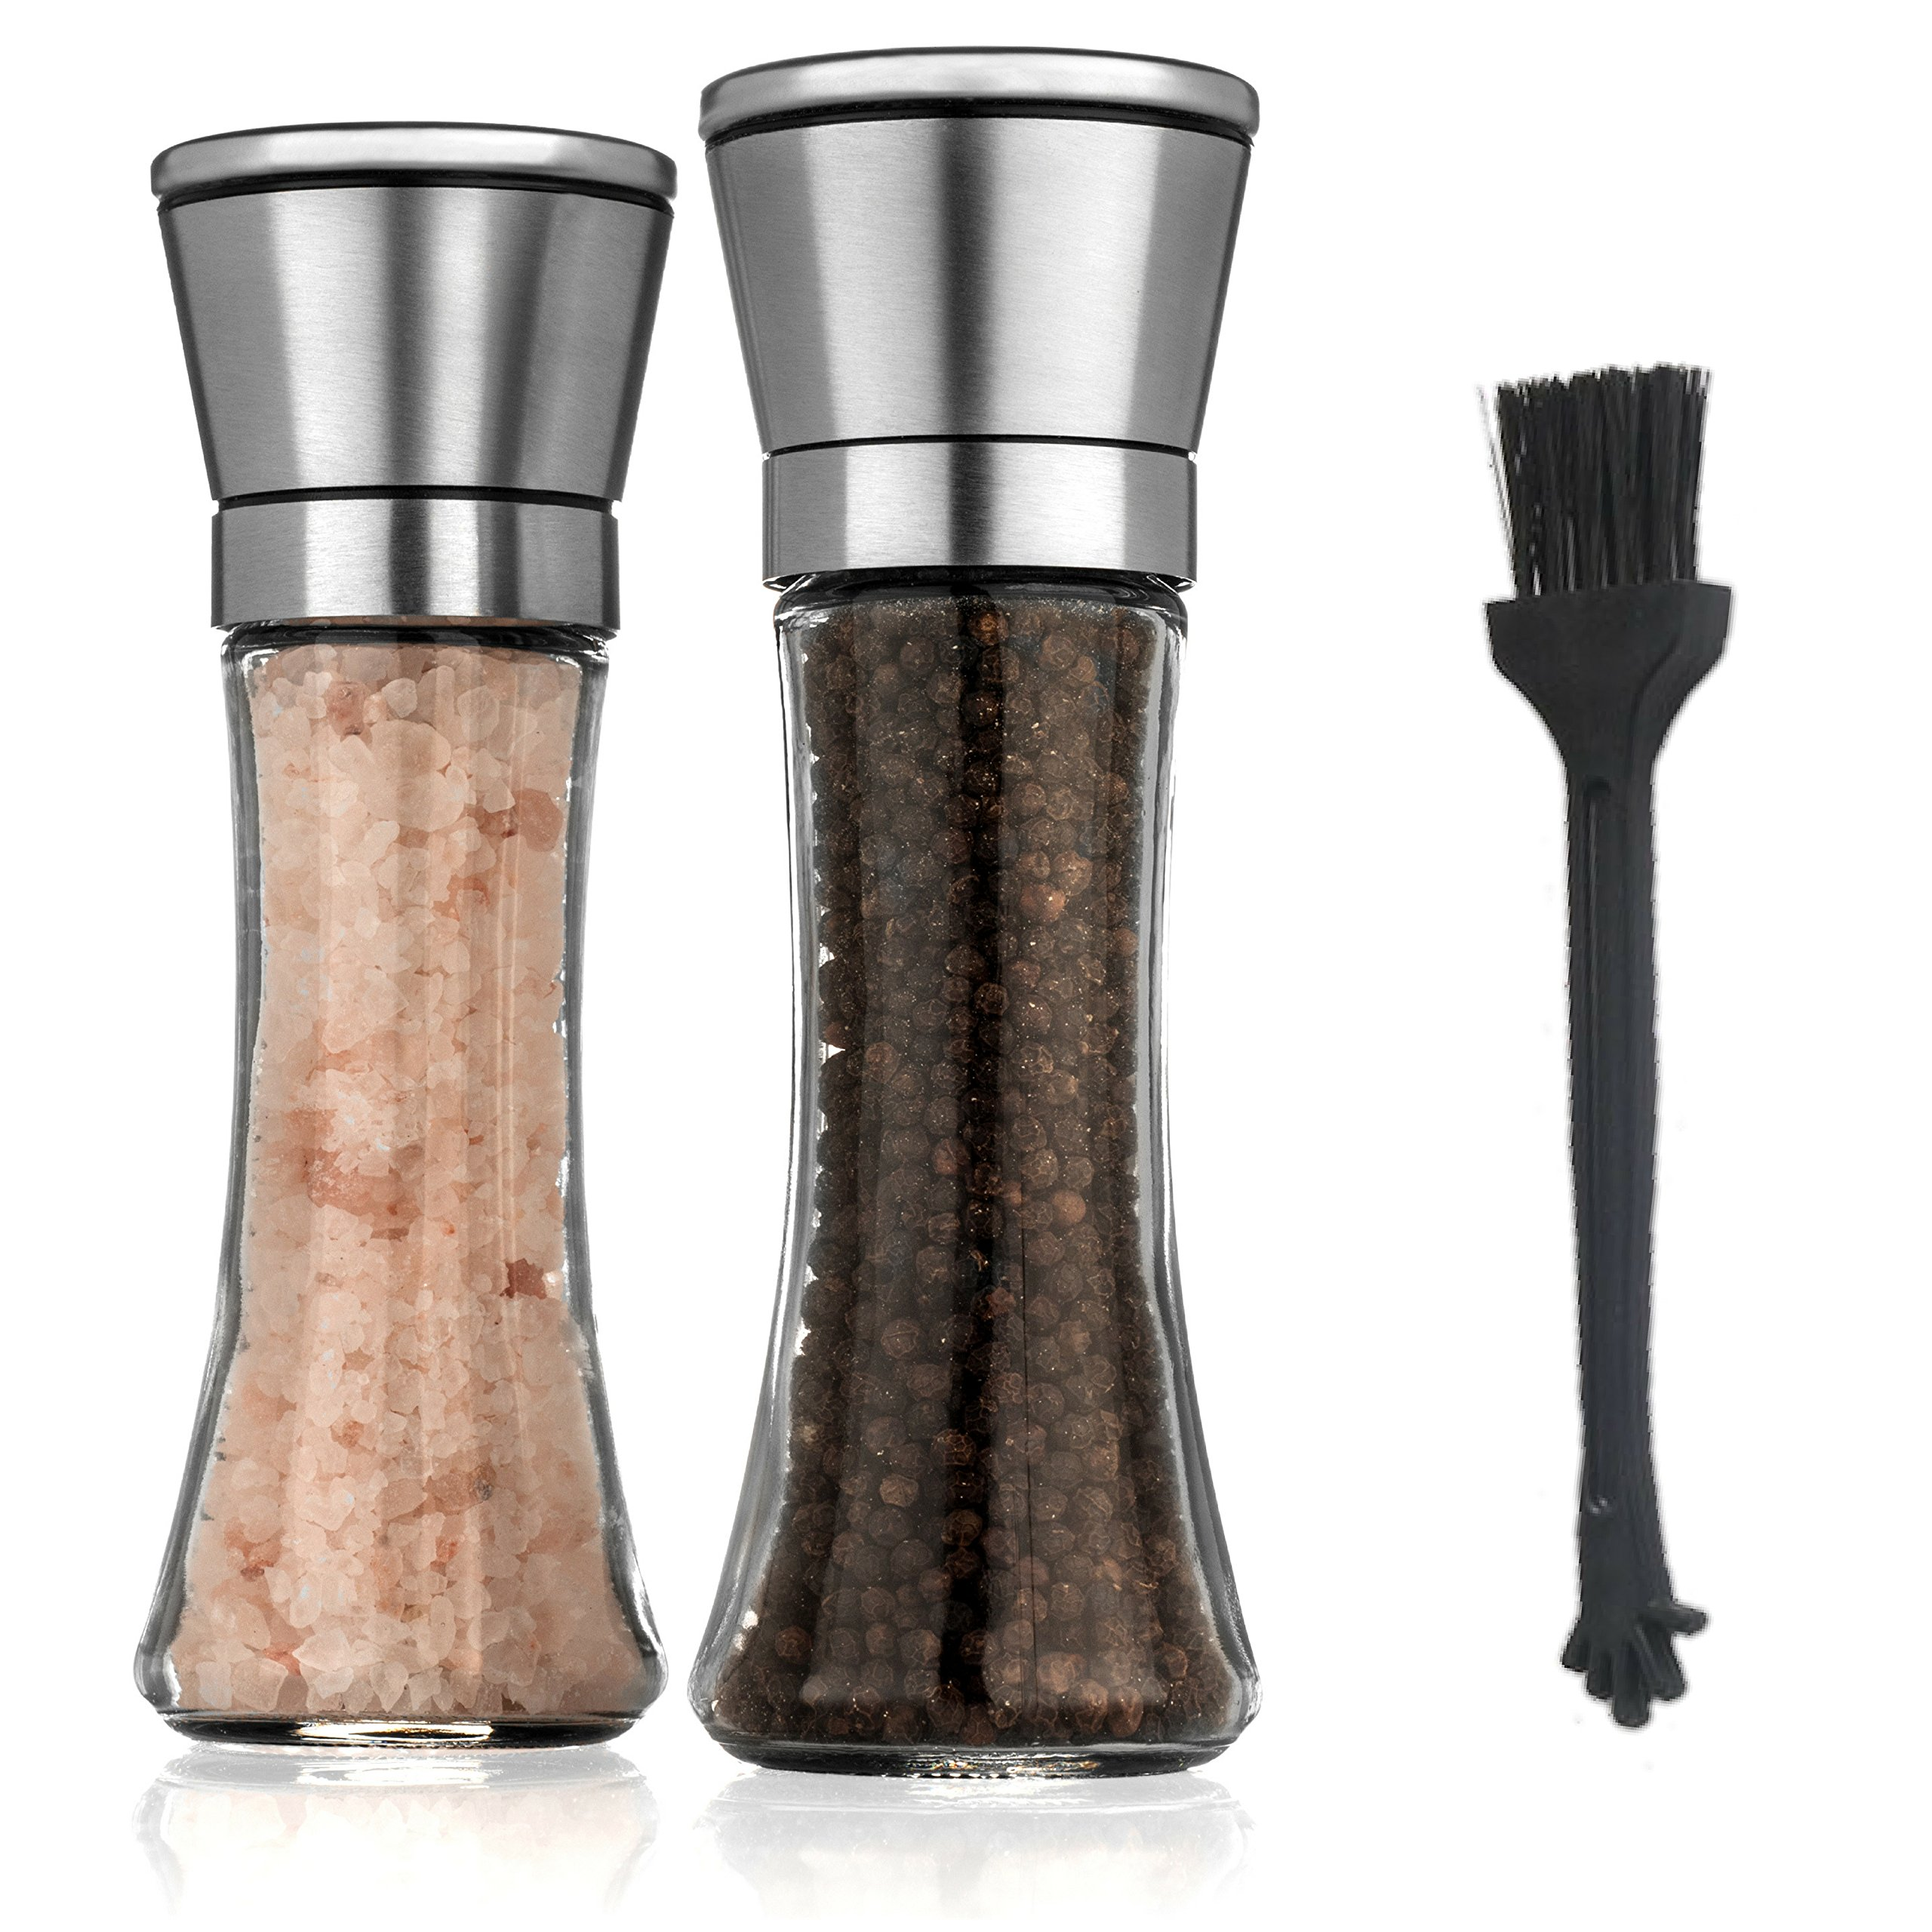 ZaraLuxe Salt And Pepper Grinder Set | Stainless Steel Salt And Pepper Shakers w/ Tall Glass Body & Adjustable Coarseness Ceramic Rotor | Easy To Refill & Clean | Premium Salt Pepper Mill (Set Of 2)